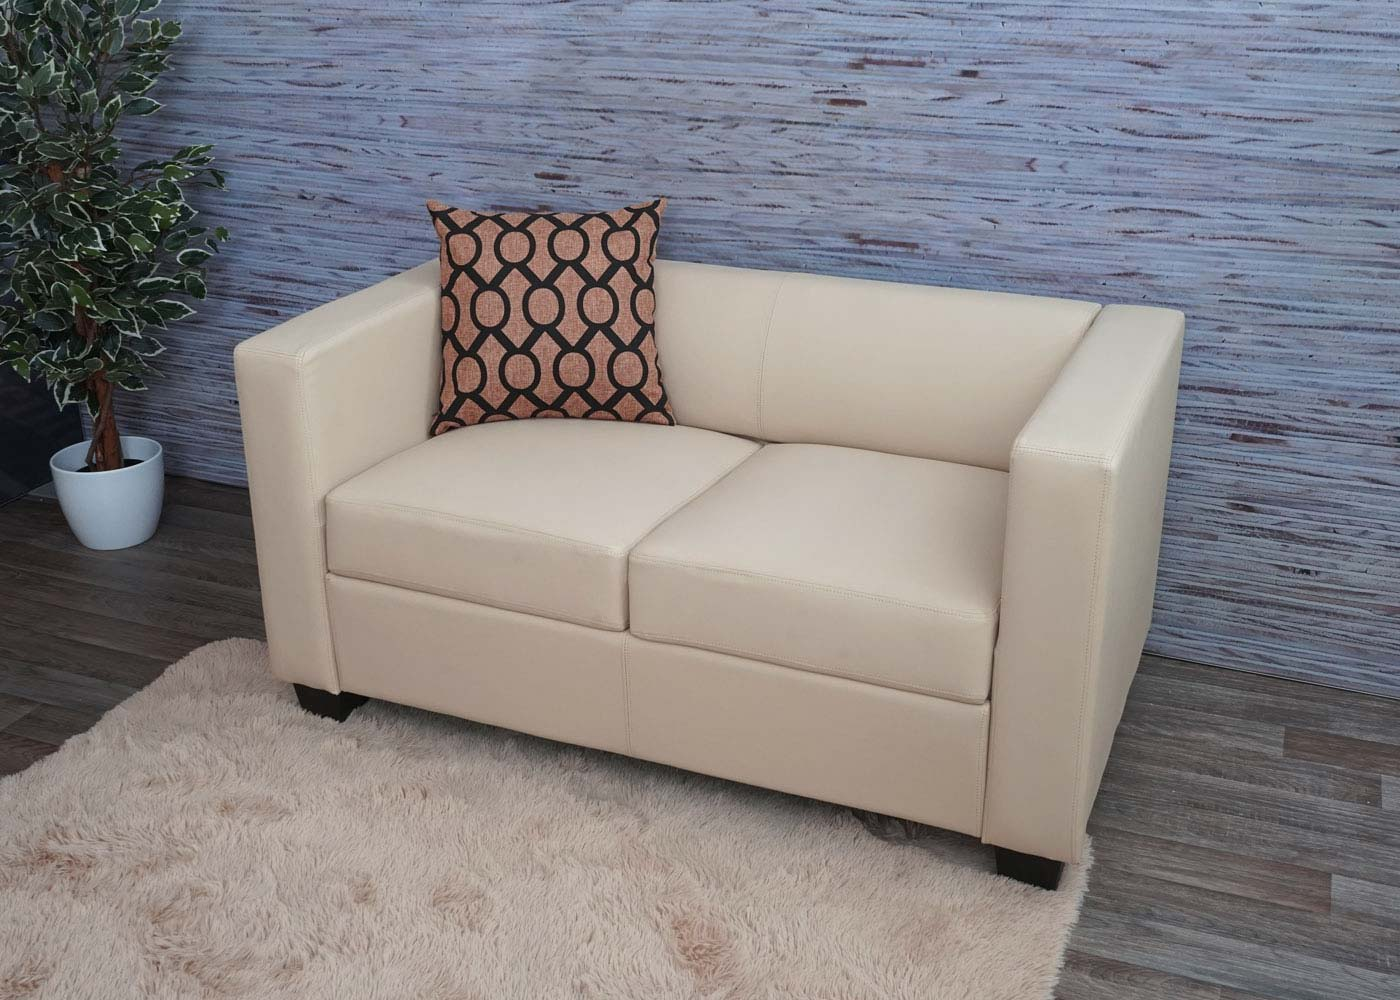 2er Sofa Couch Loungesofa Lille Ambiente-Bild